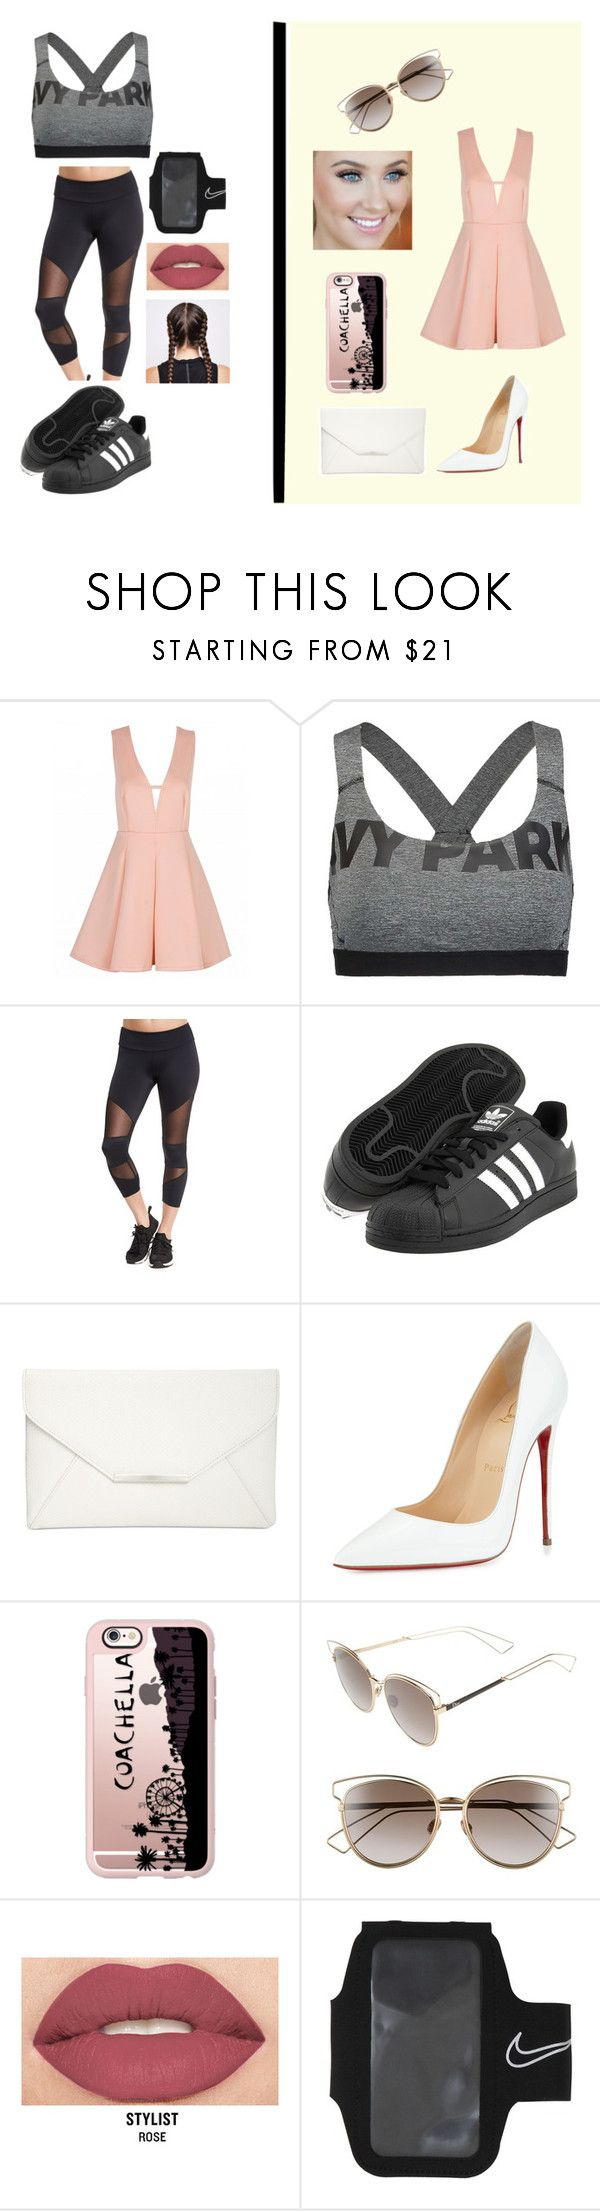 """""""Two moods 💋💄👗◾️🚴🏼🏋🏽⛹🏽"""" by marchante-ml ❤ liked on Polyvore featuring Ivy Park, Onzie, adidas Originals, Style & Co., Christian Louboutin, Casetify, Christian Dior, Smashbox and NIKE"""